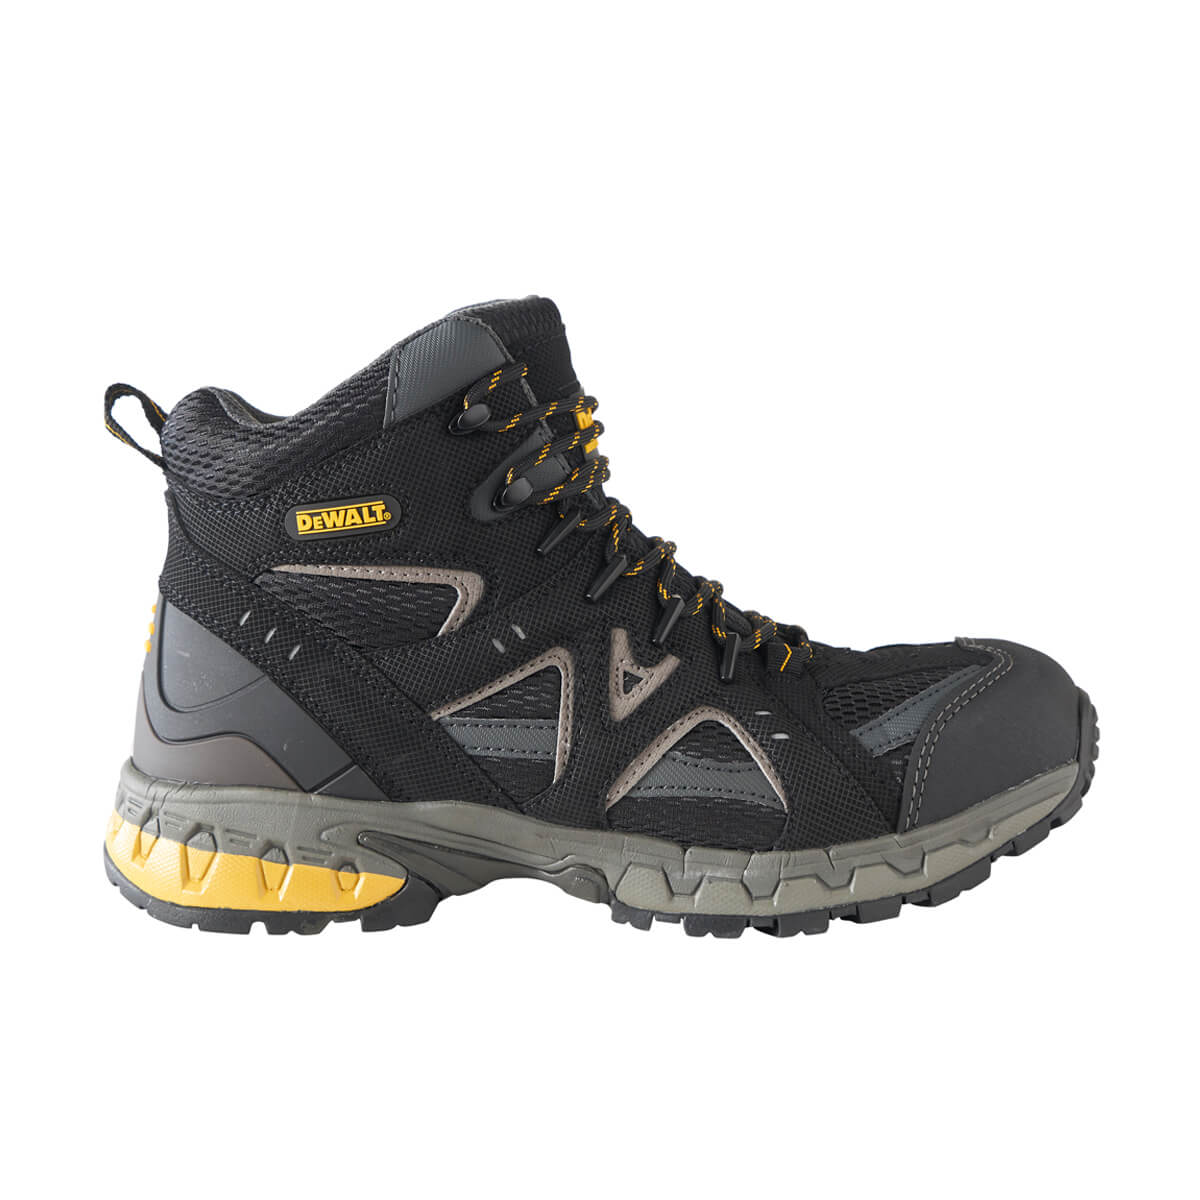 Men's DEWALT®Torque Safety Boots